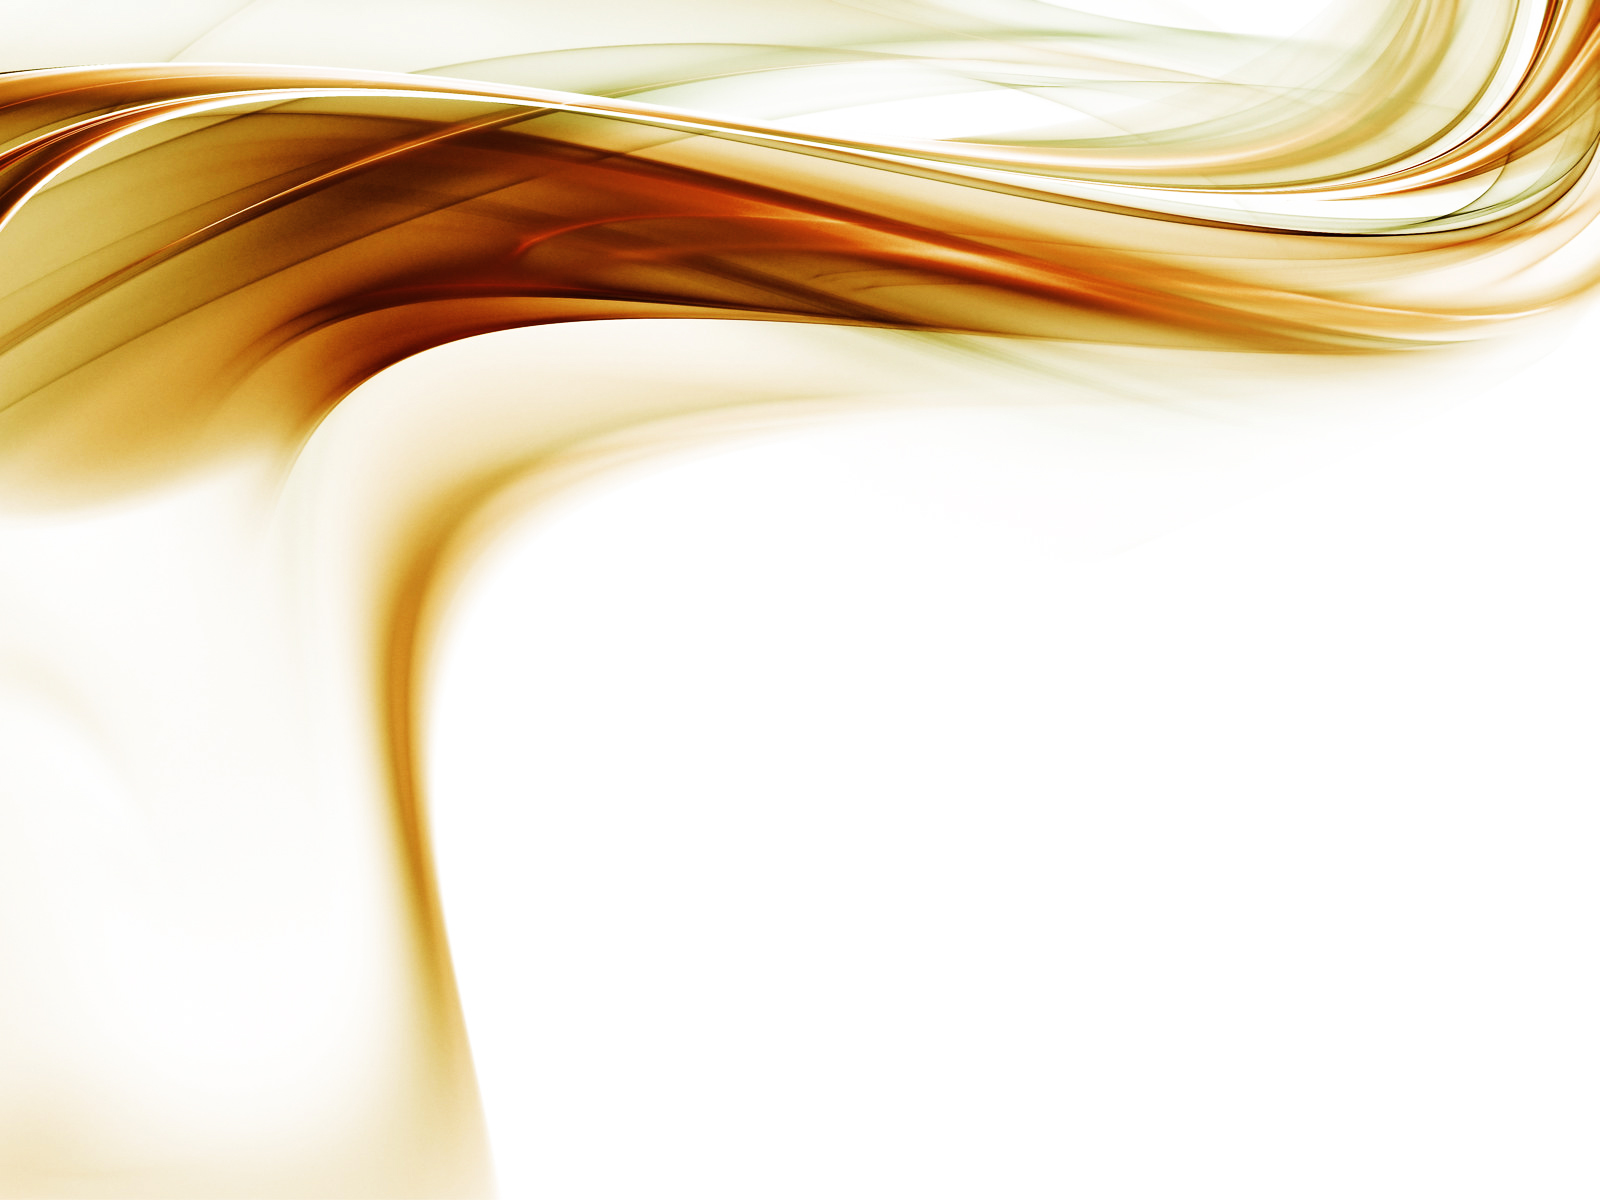 Abstract gold ppt backgrounds template ppt backgrounds templates software powerpoint 2003 2007 2010 2013 page size 1024px x 768px free license feel free to download and use this item for both personal and etc toneelgroepblik Gallery